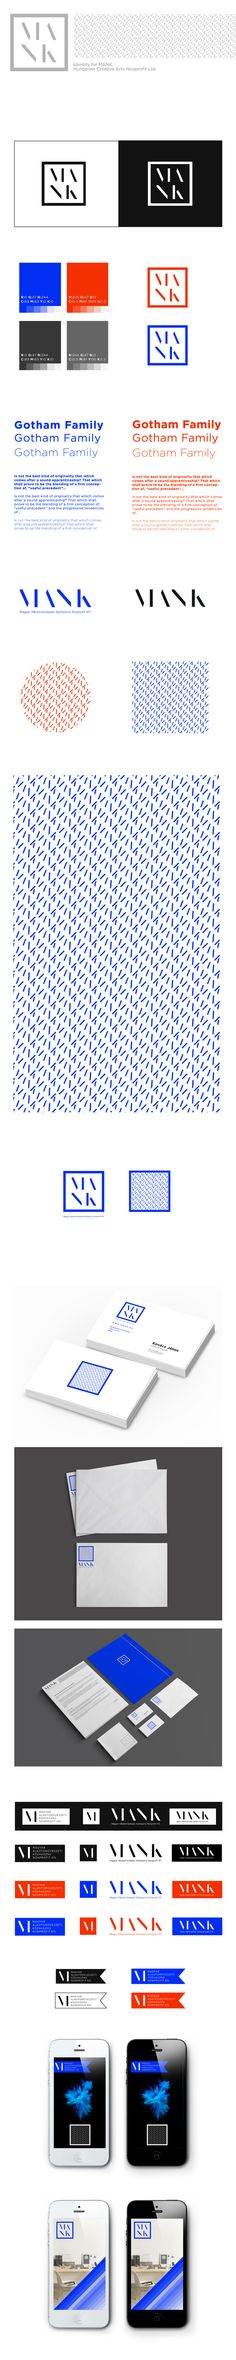 MANK / Hungarian Creative Arts Nonprofit Ltd Identity by Misi Szilágyi, via Behance